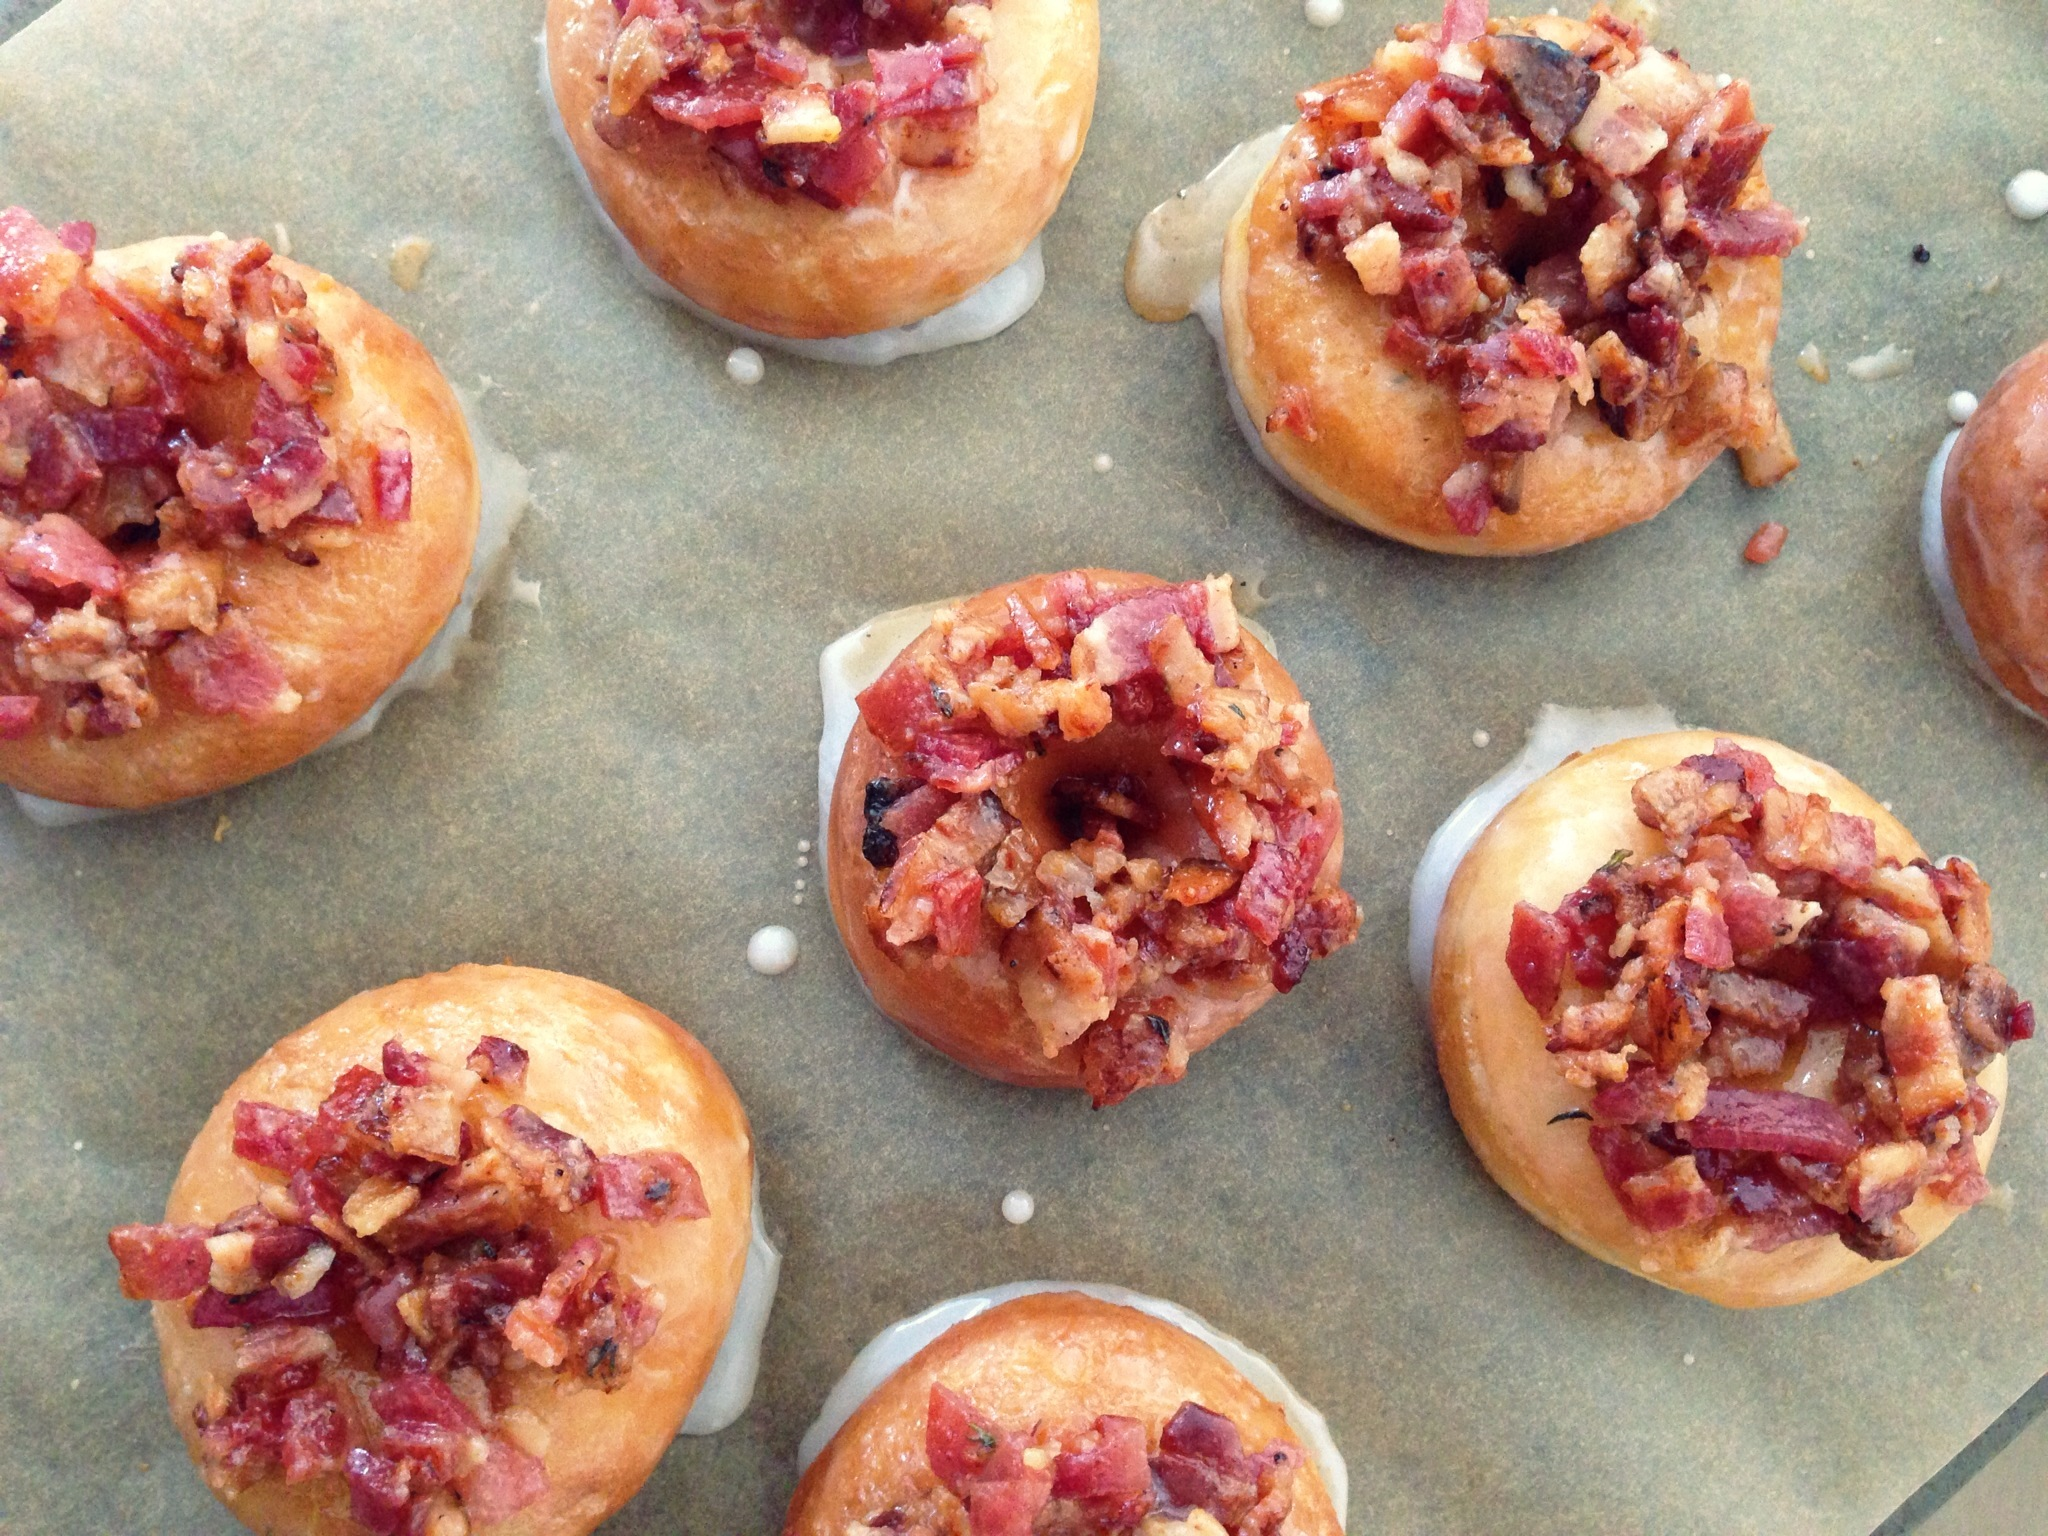 Bacon Maple Glazed Thyme Donuts